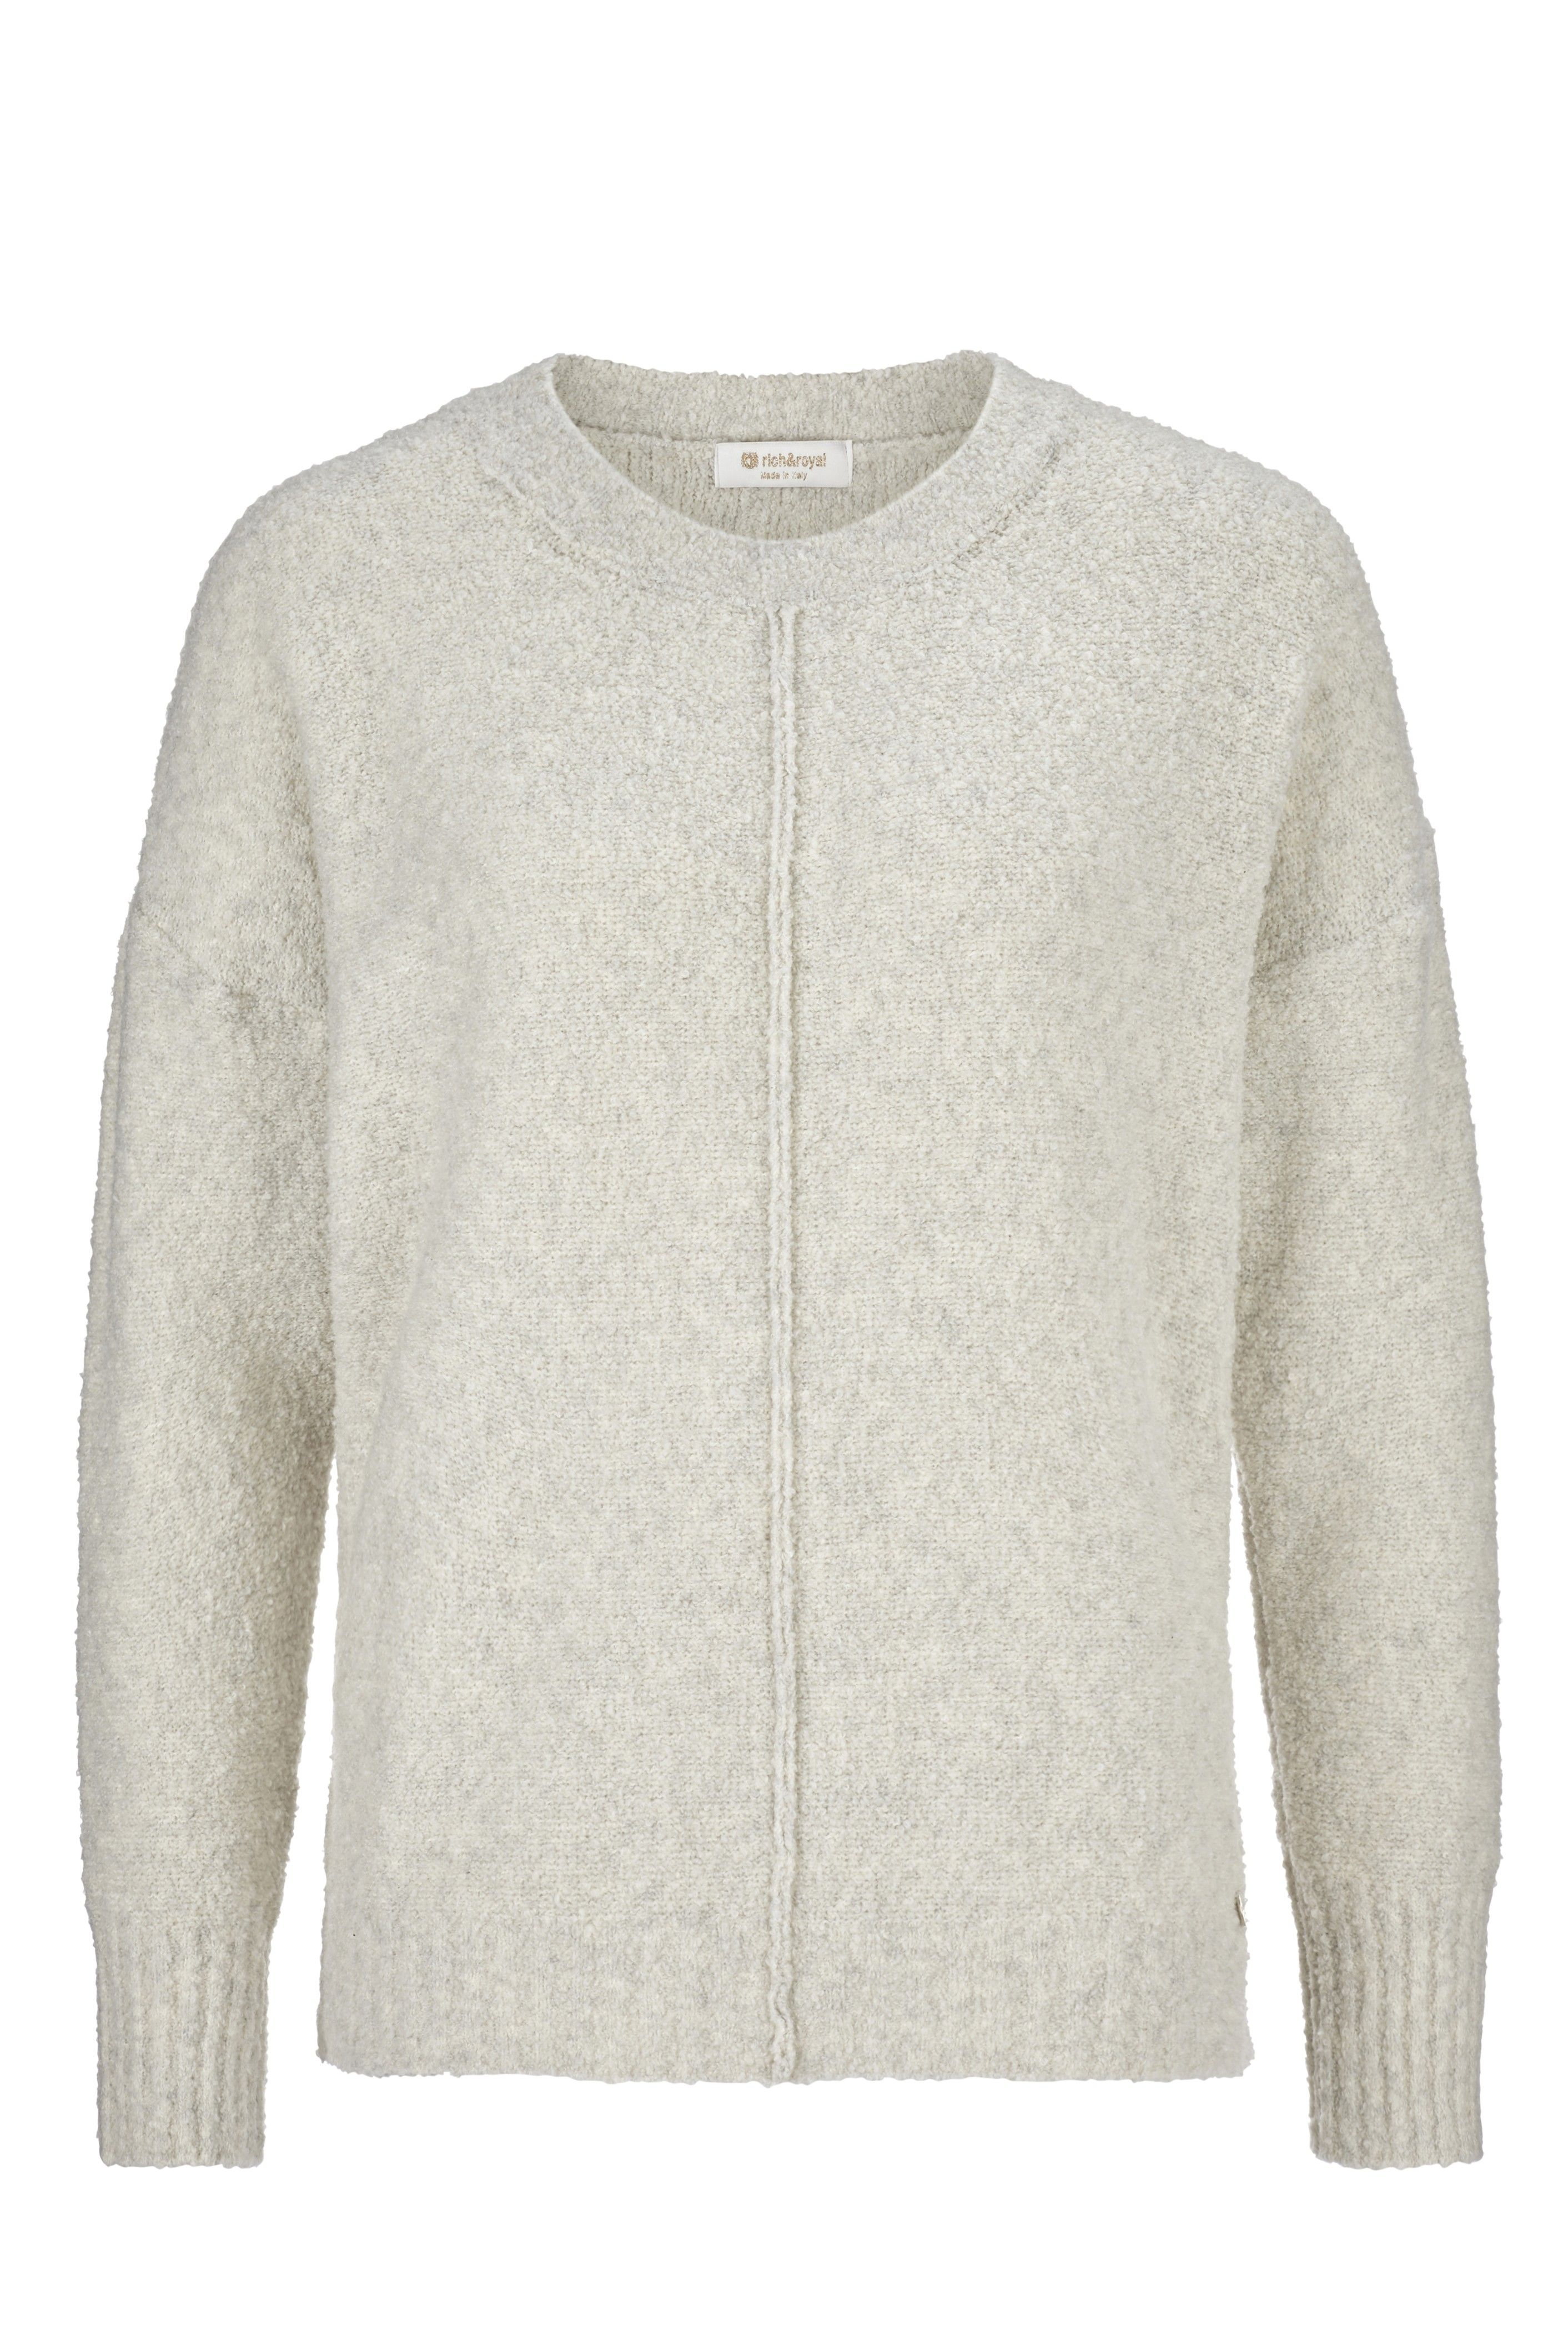 RICH & ROYAL - Damen Pullover - Crew Neck - Pearl White